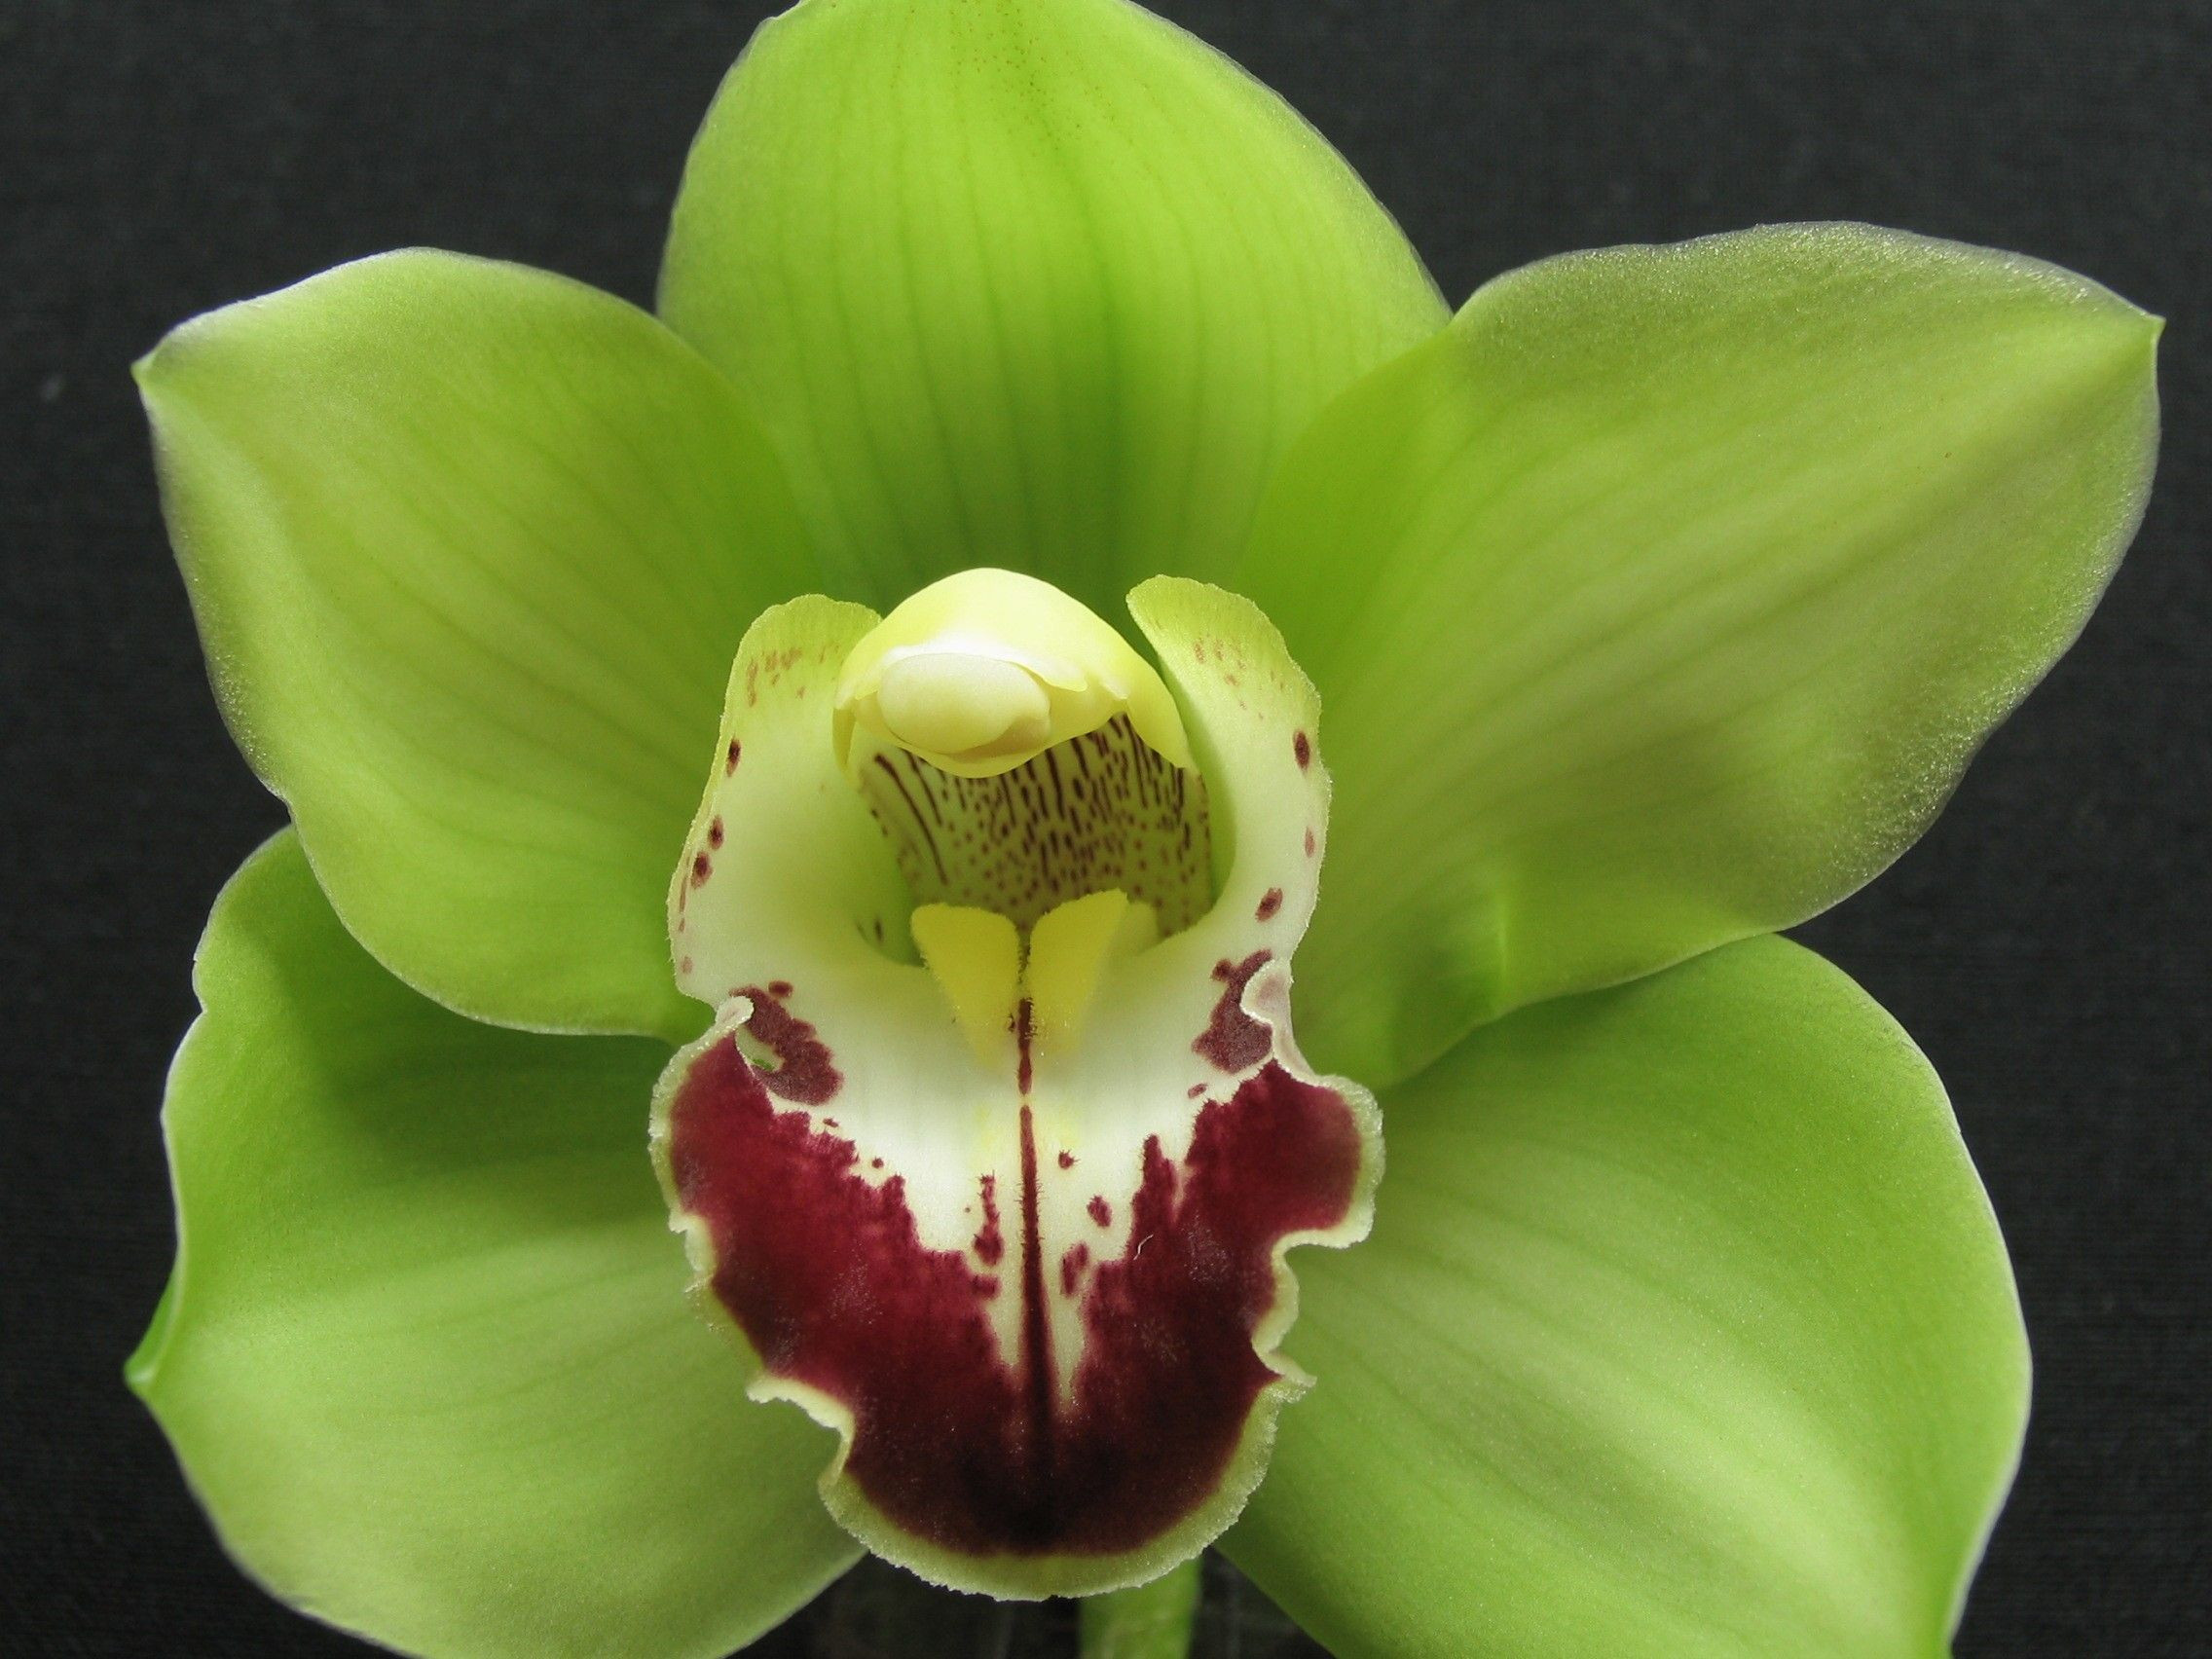 Green Cymbidium a larger orchid excellent for single flower corsages or as a unique form in any design